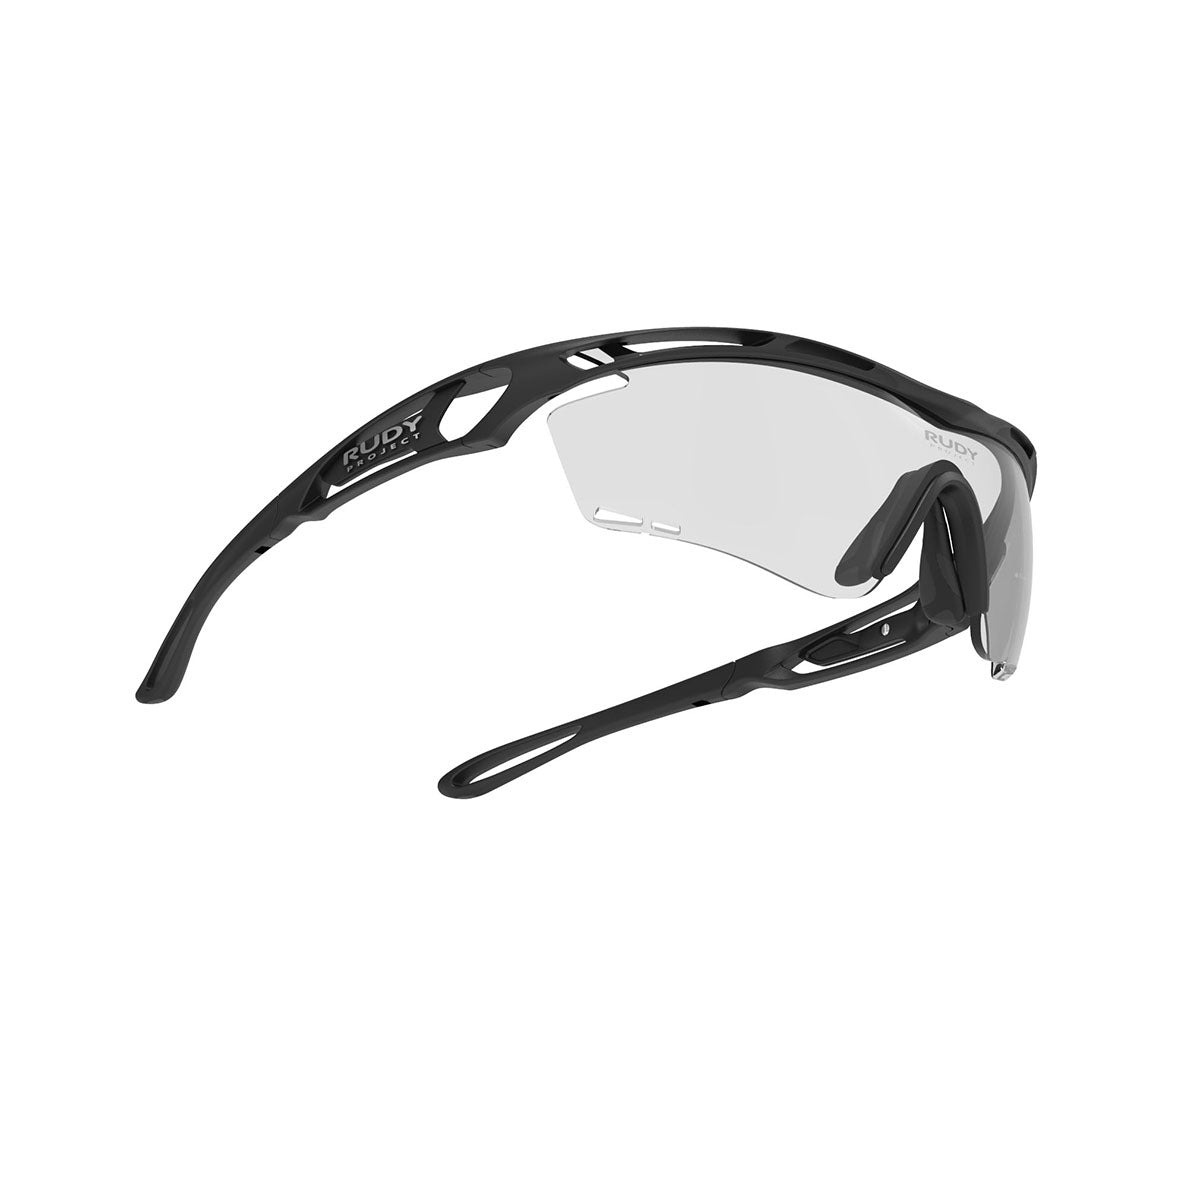 Rudy Project - Tralyx - frame color: Matte Black - lens color: ImpactX-2 Photochromic Clear to Black - photo angle: Bottom Front Angle Variant Hover Image